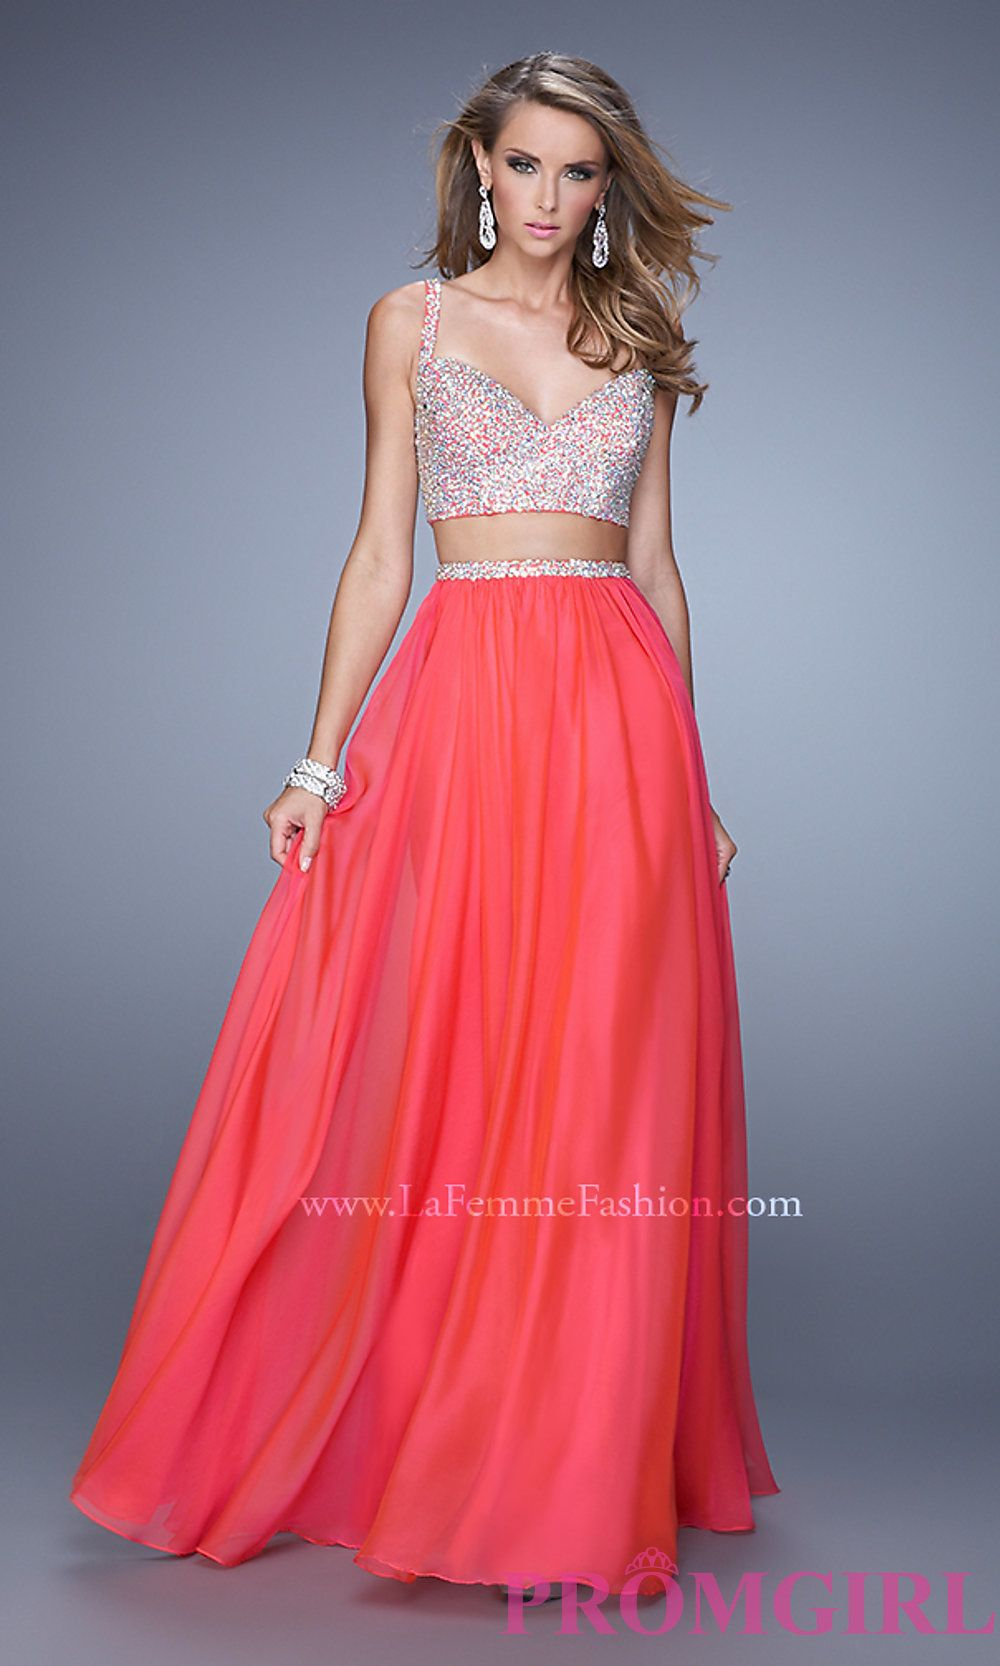 Prom Dresses Celebrity Dresses Sexy Evening Gowns Promgirl Long